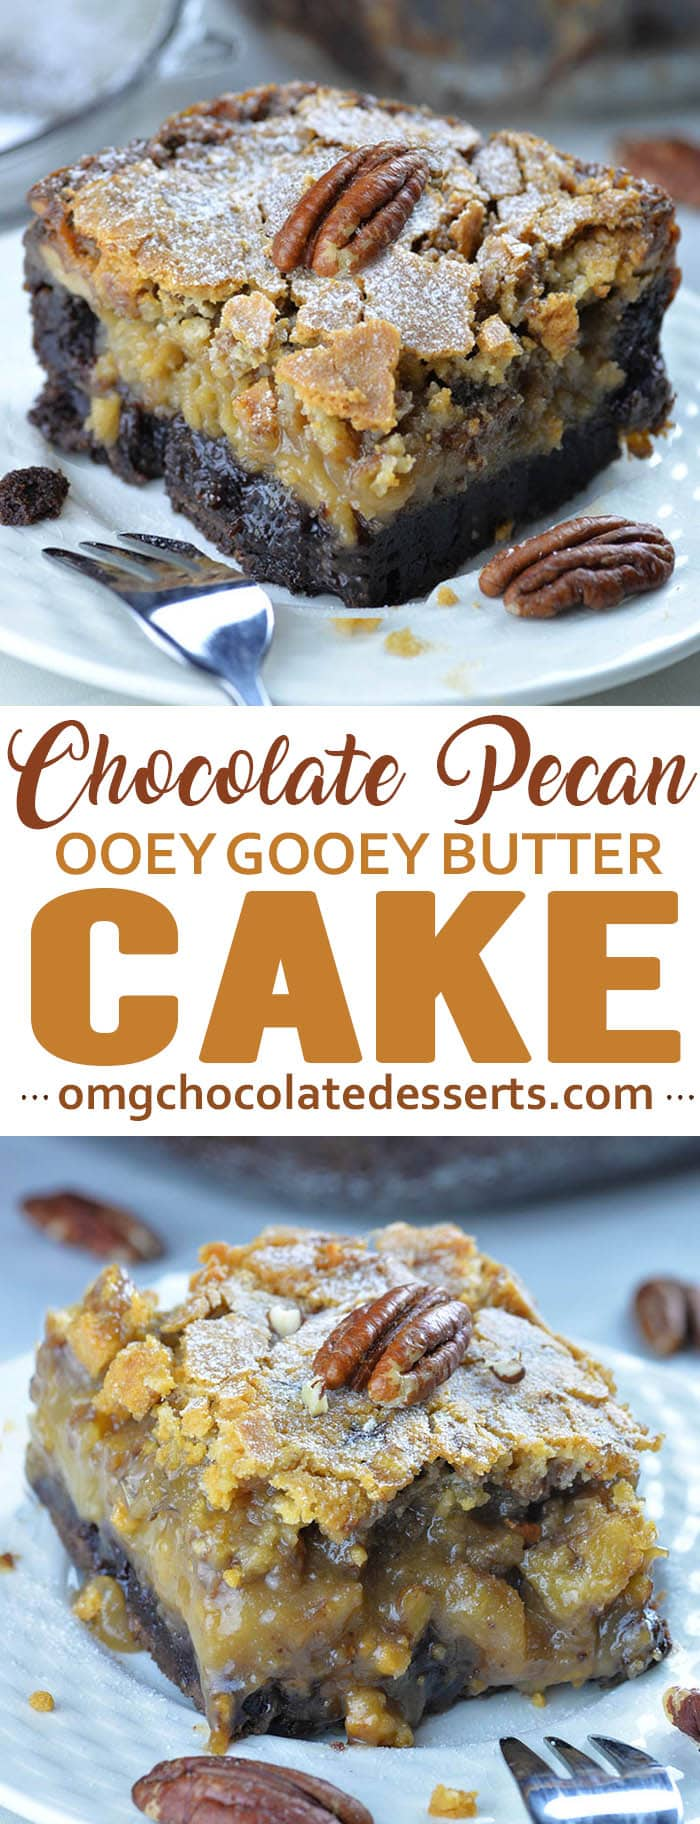 Fudgey brownie crust, ooey gooey center and sweet flaky top makes the best texture and flavor combo!!! Ooey Gooey Butter Cake is the best soon after baking it, warm and served at room temperature.